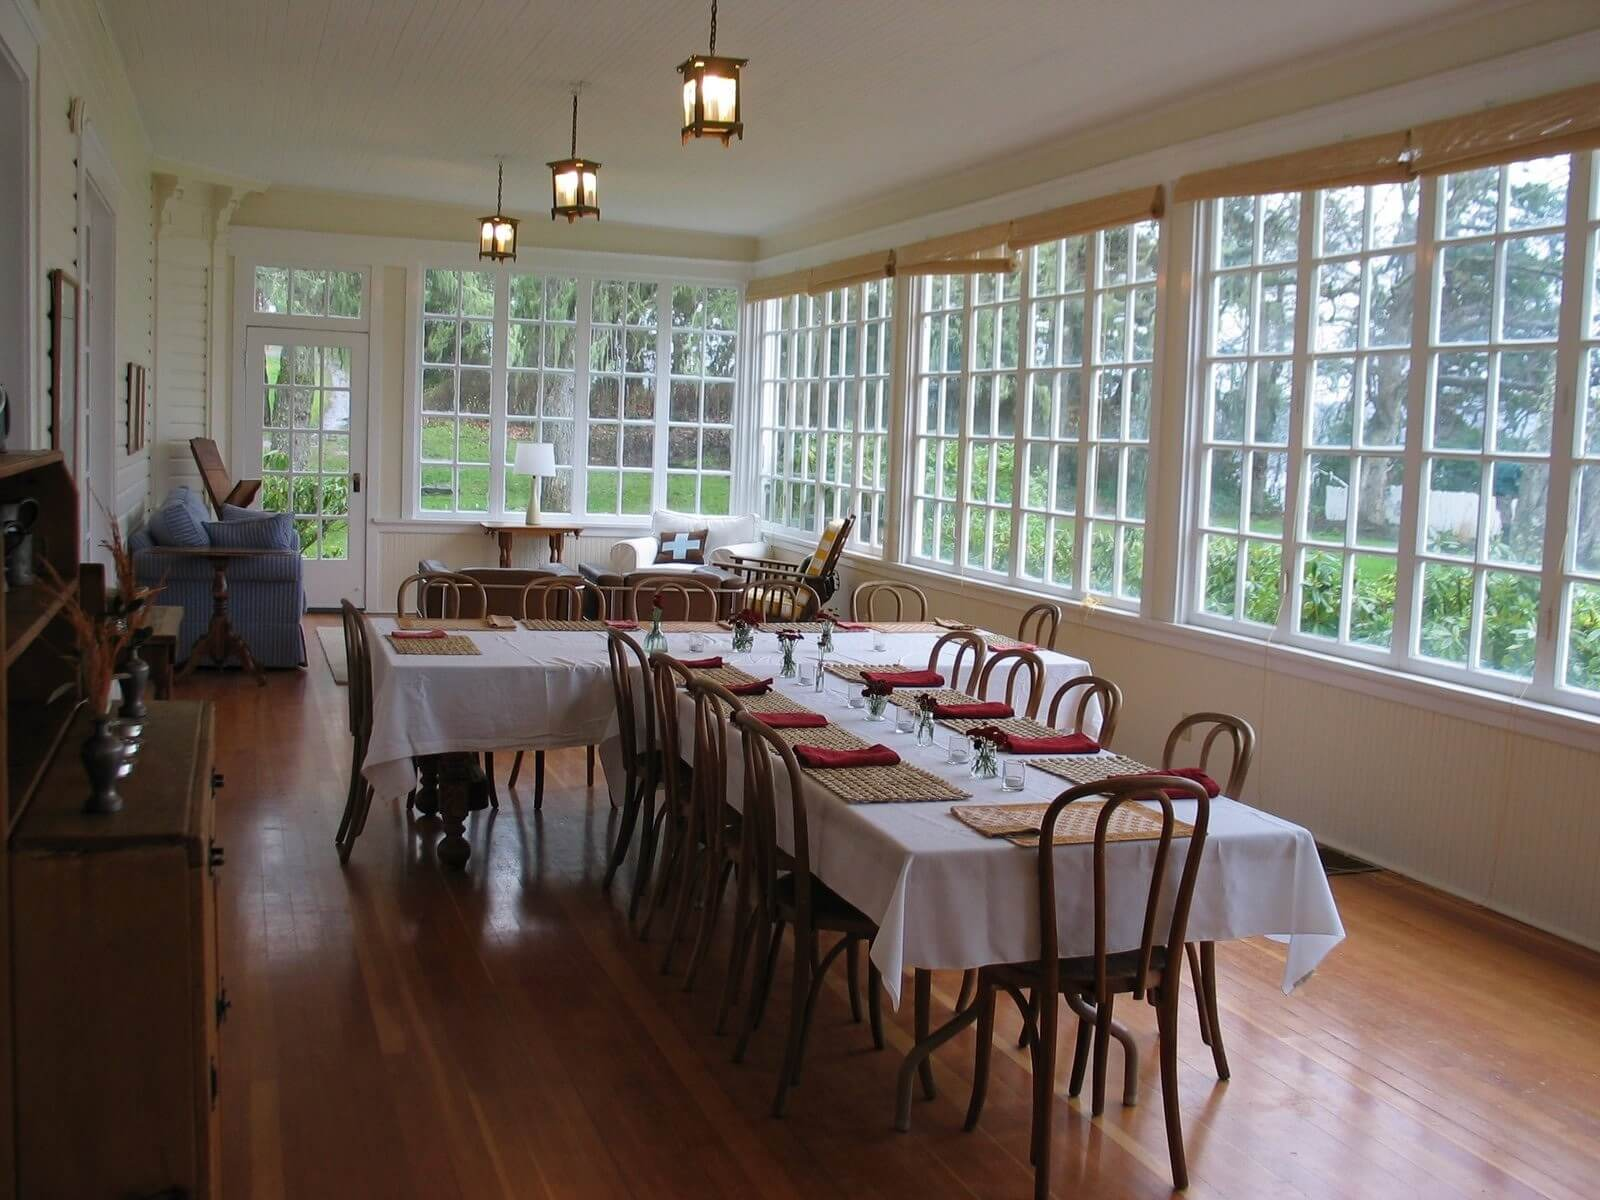 Use the sunroom as a place to enjoy meals with friends and family